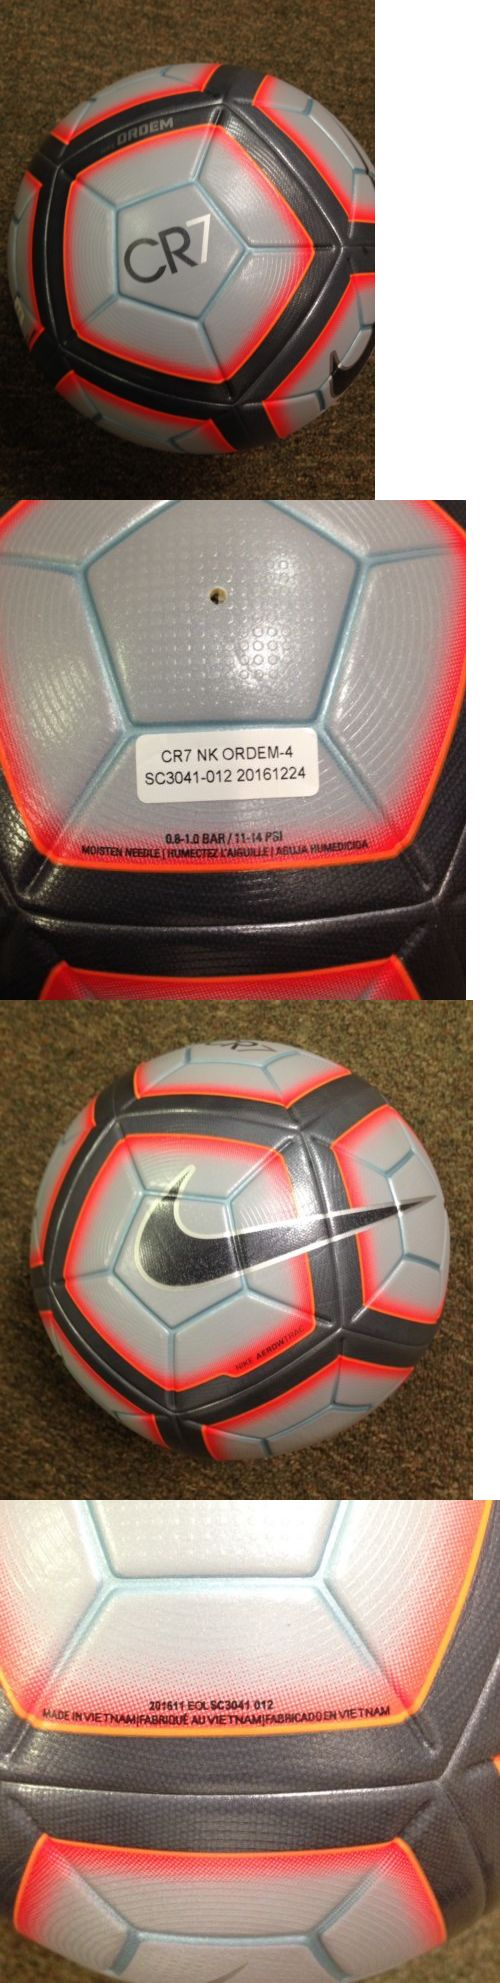 Balls 20863: Nike Ordem 4 Cr7 Official Match Ball - Cristiano Ronaldo Fifa New! -> BUY IT NOW ONLY: $119.95 on eBay!